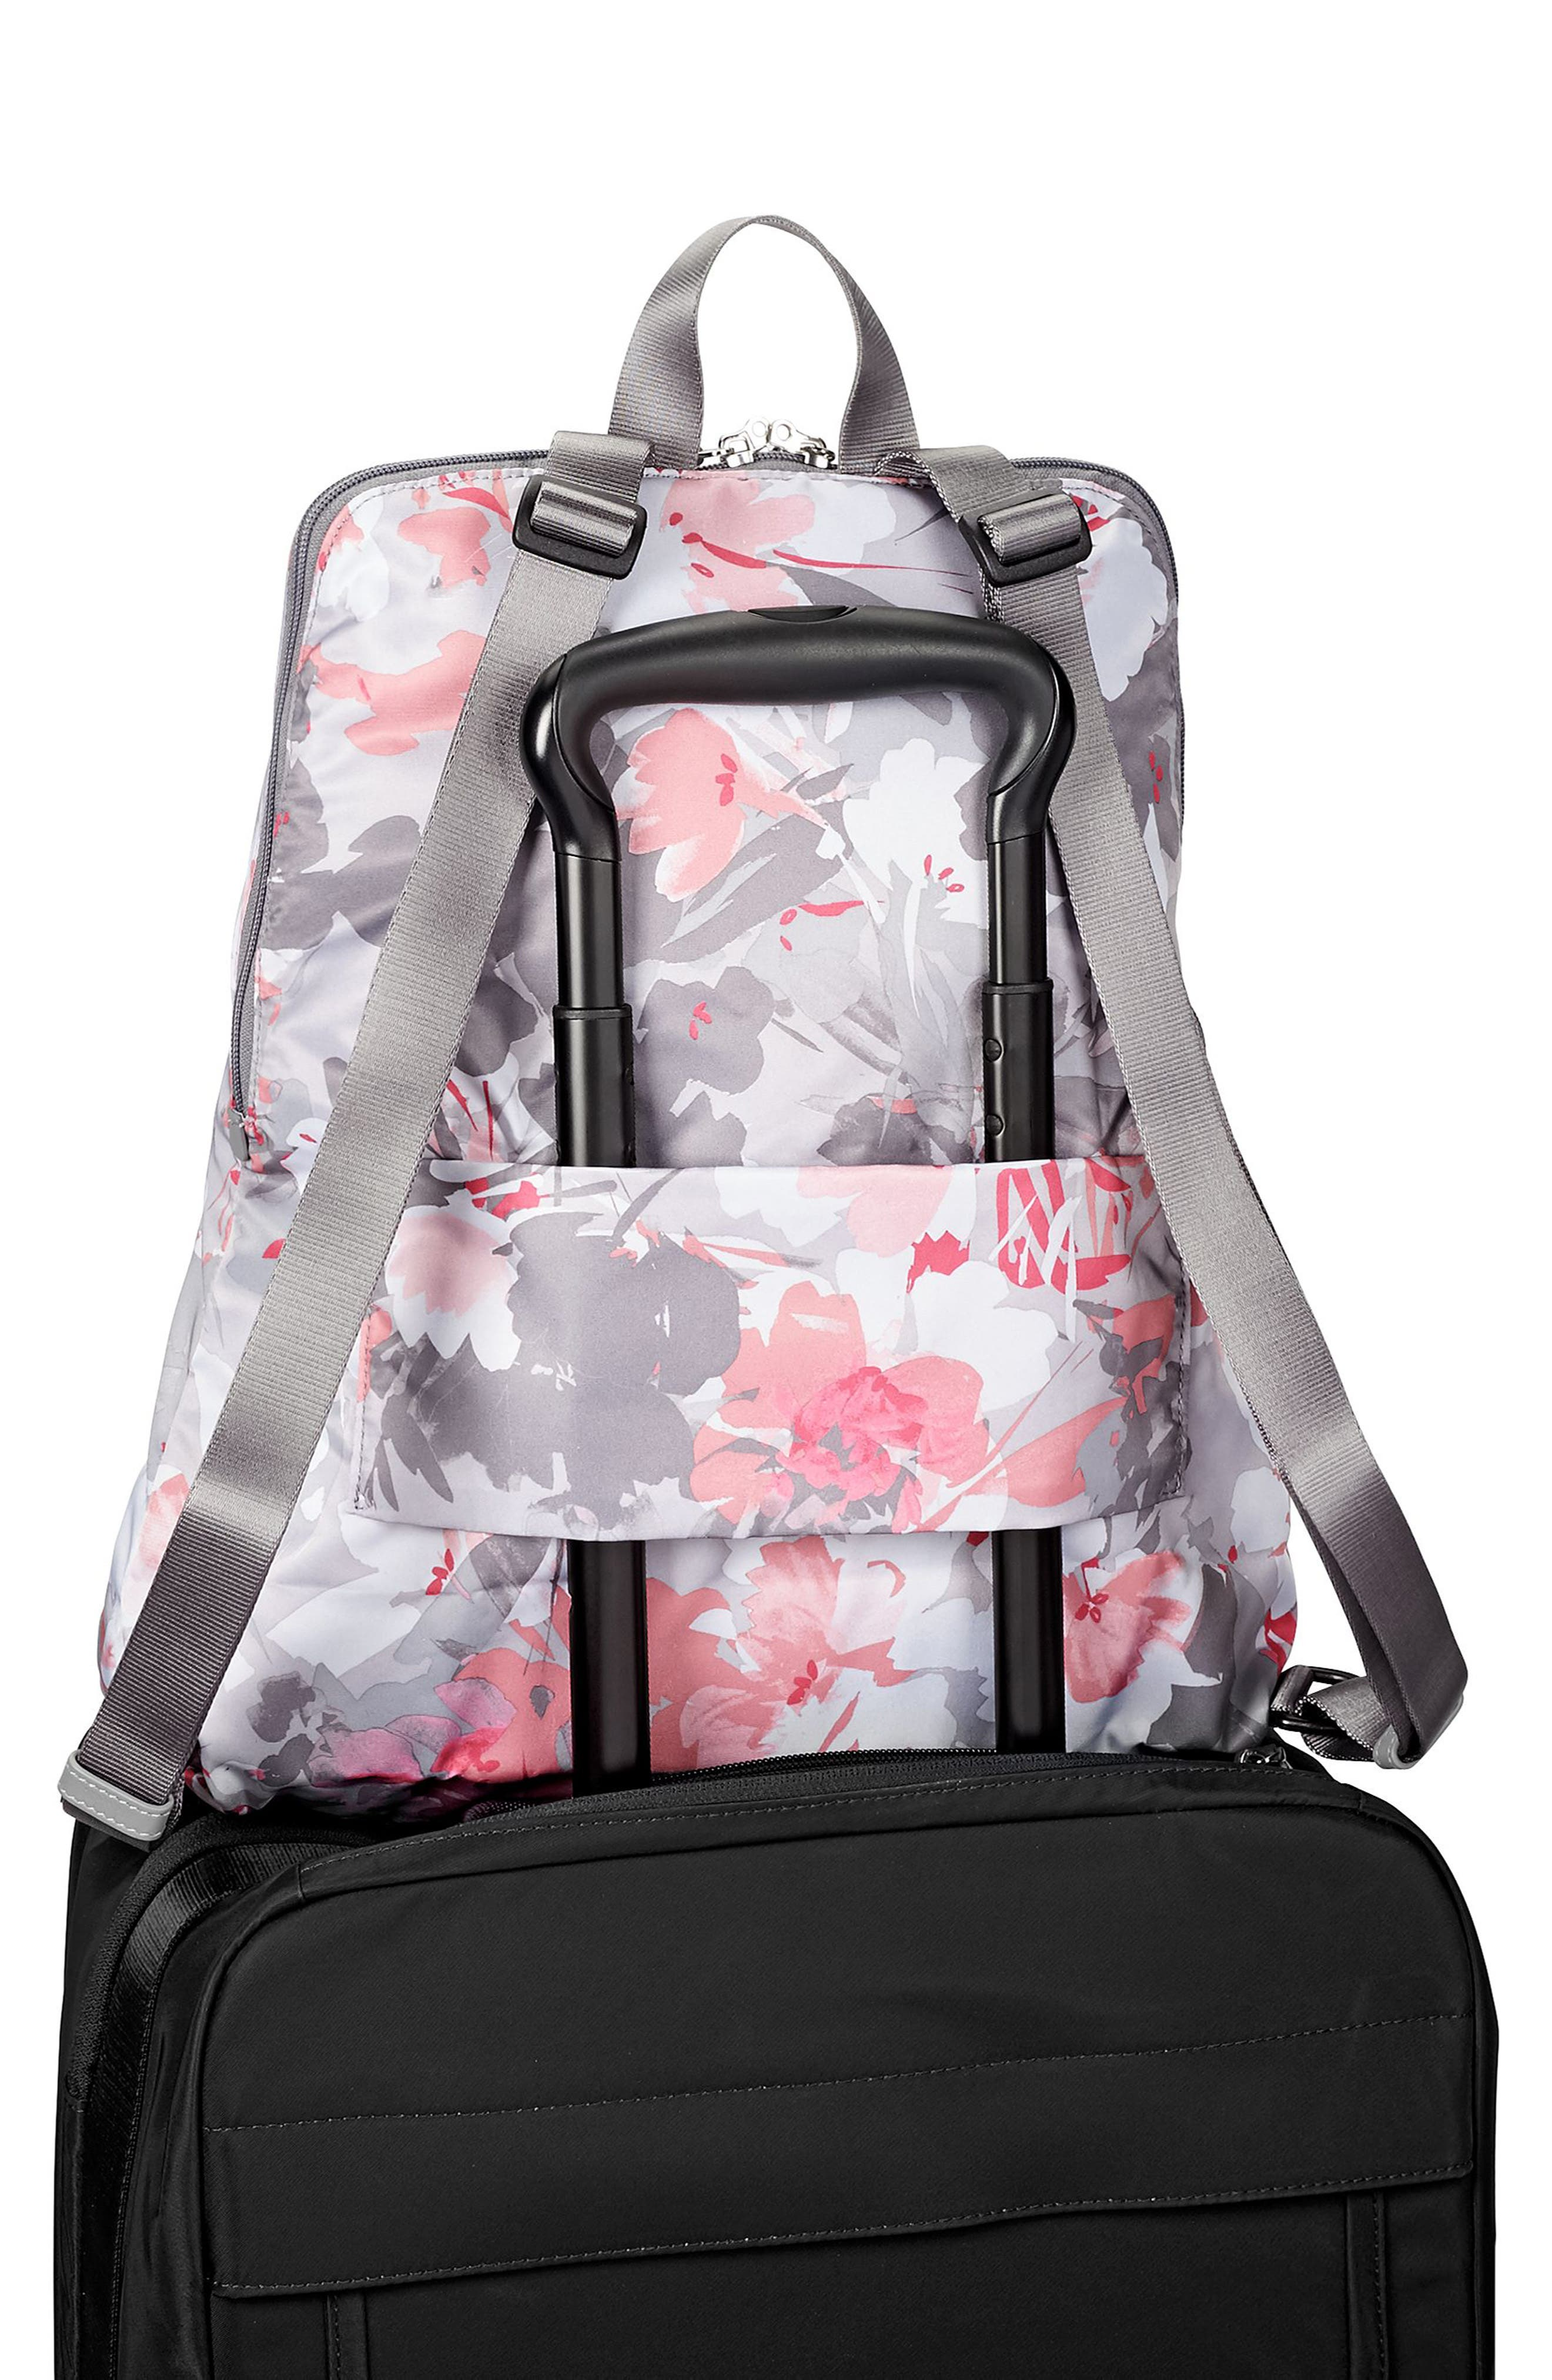 Just in Case<sup>®</sup> Back-Up Tavel Bag,                             Alternate thumbnail 3, color,                             020